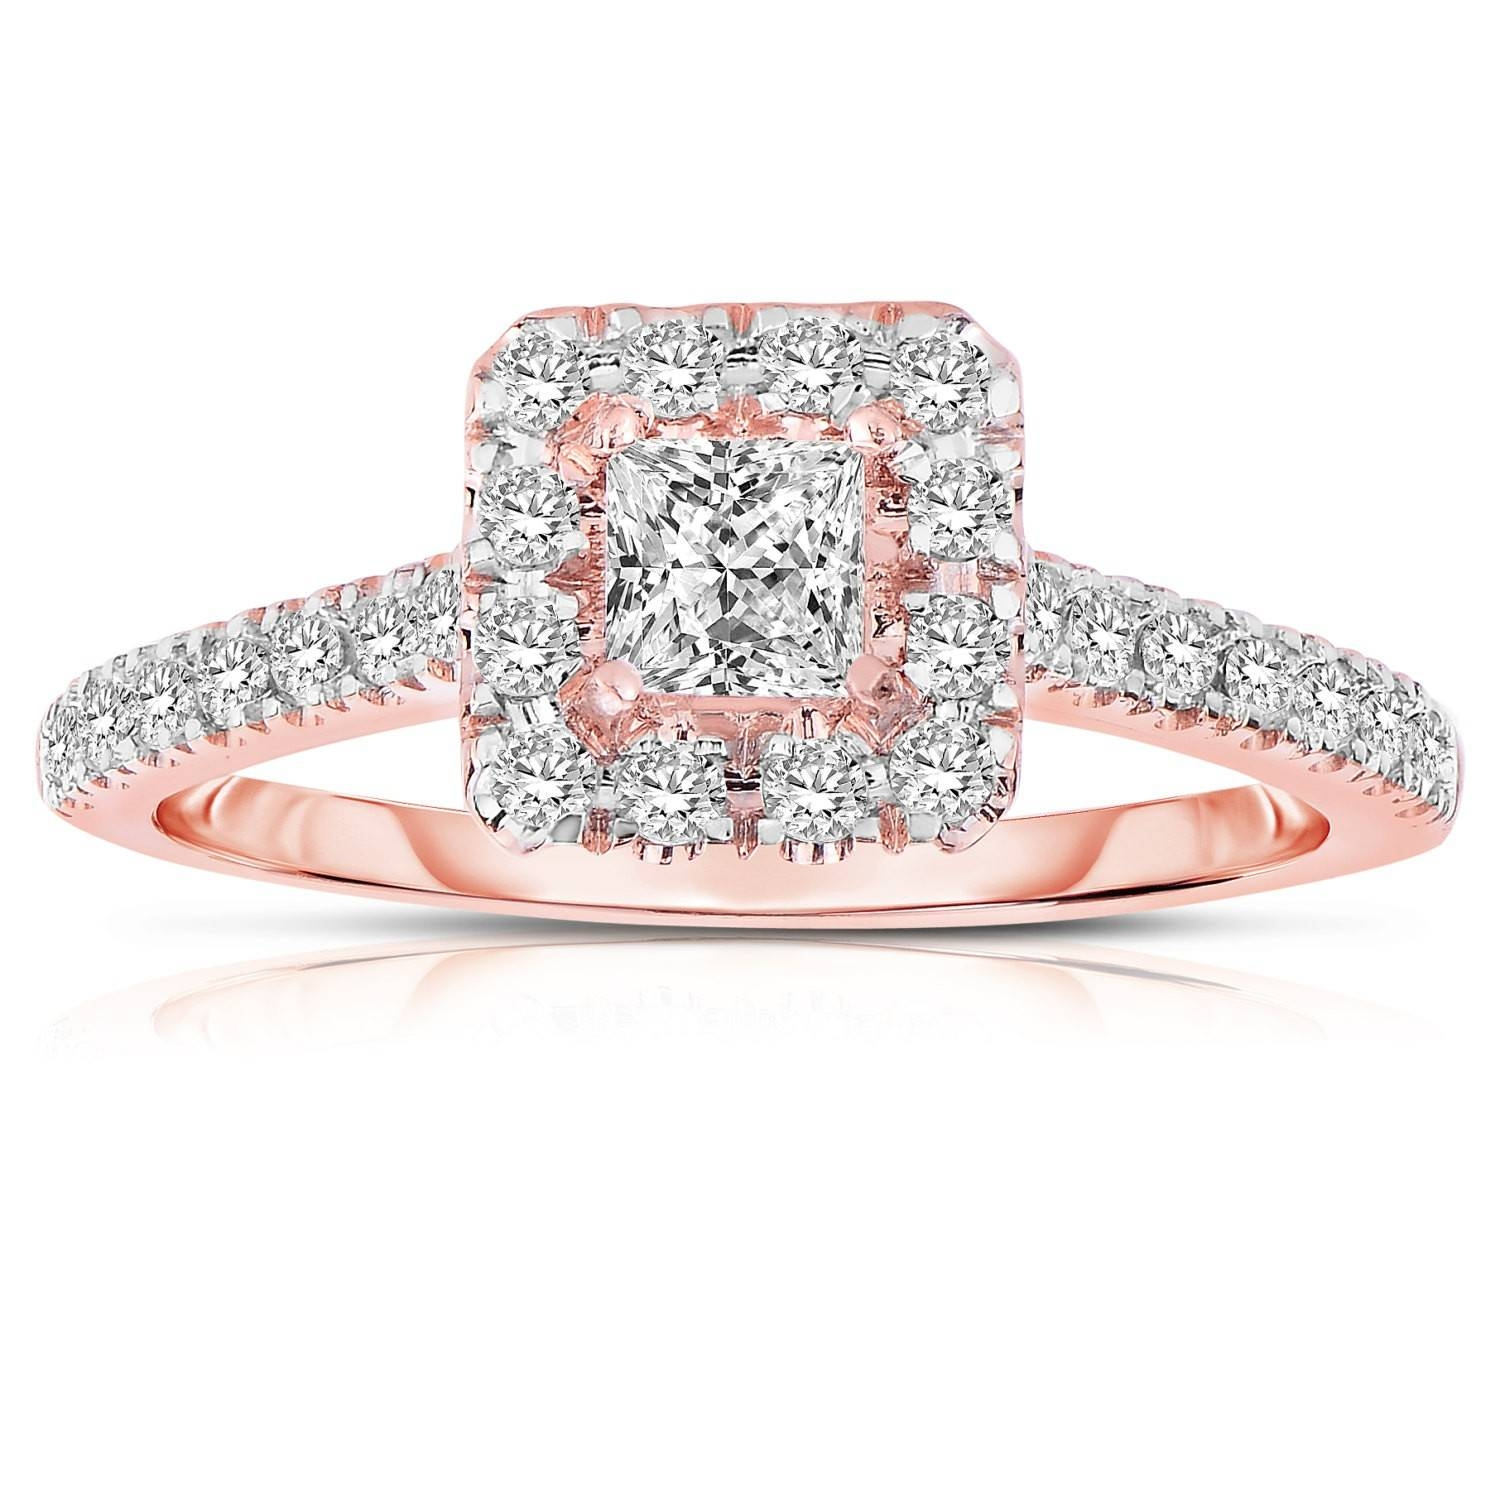 Engagement Rings Under 500 | Diamond Engagement Rings Under $500 Throughout Engagement Rings For Women Under  (View 13 of 15)